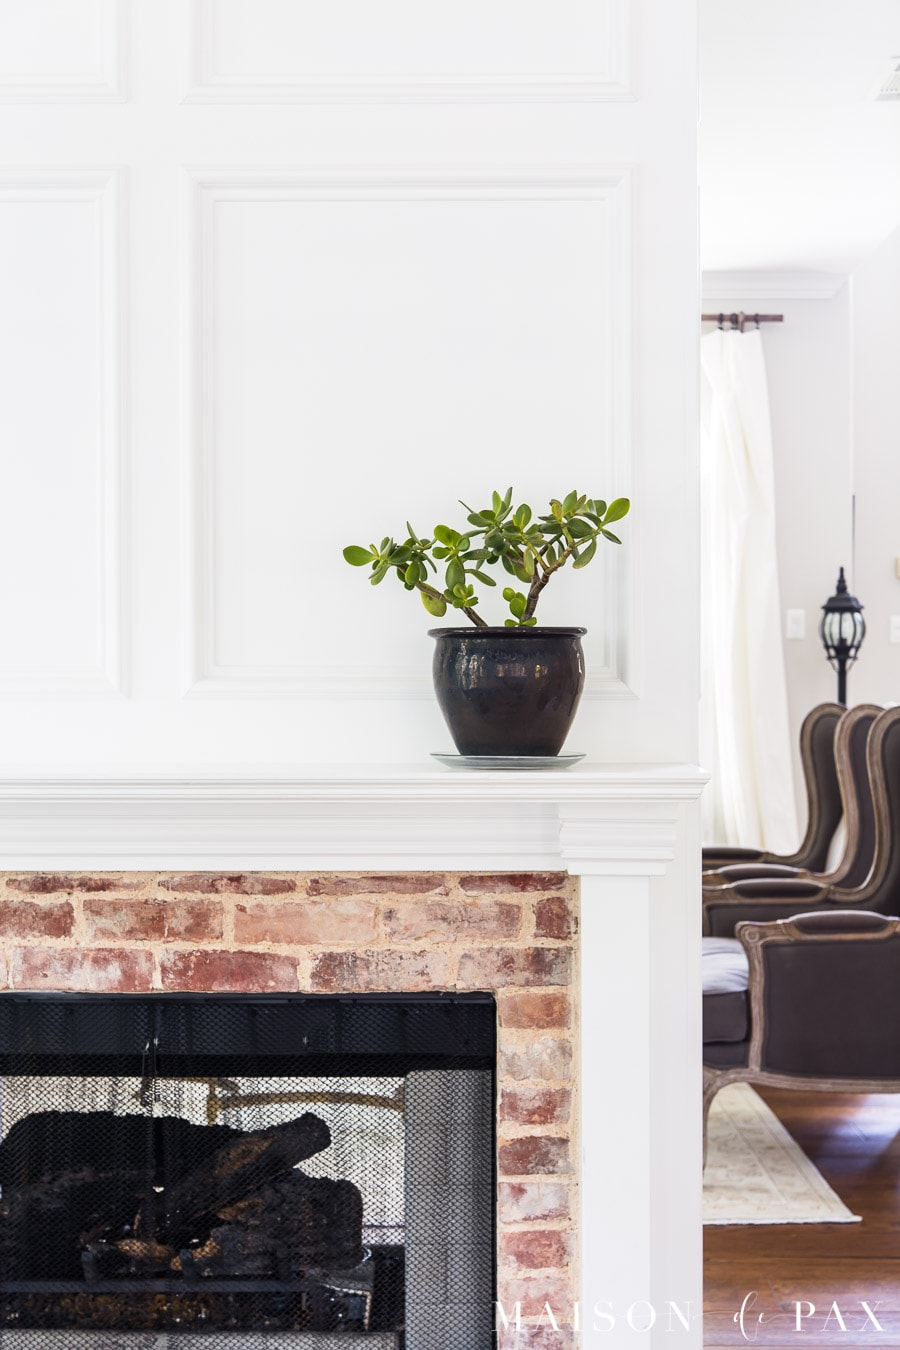 jade plant in black pot on white fireplace mantel | Maison de Pax